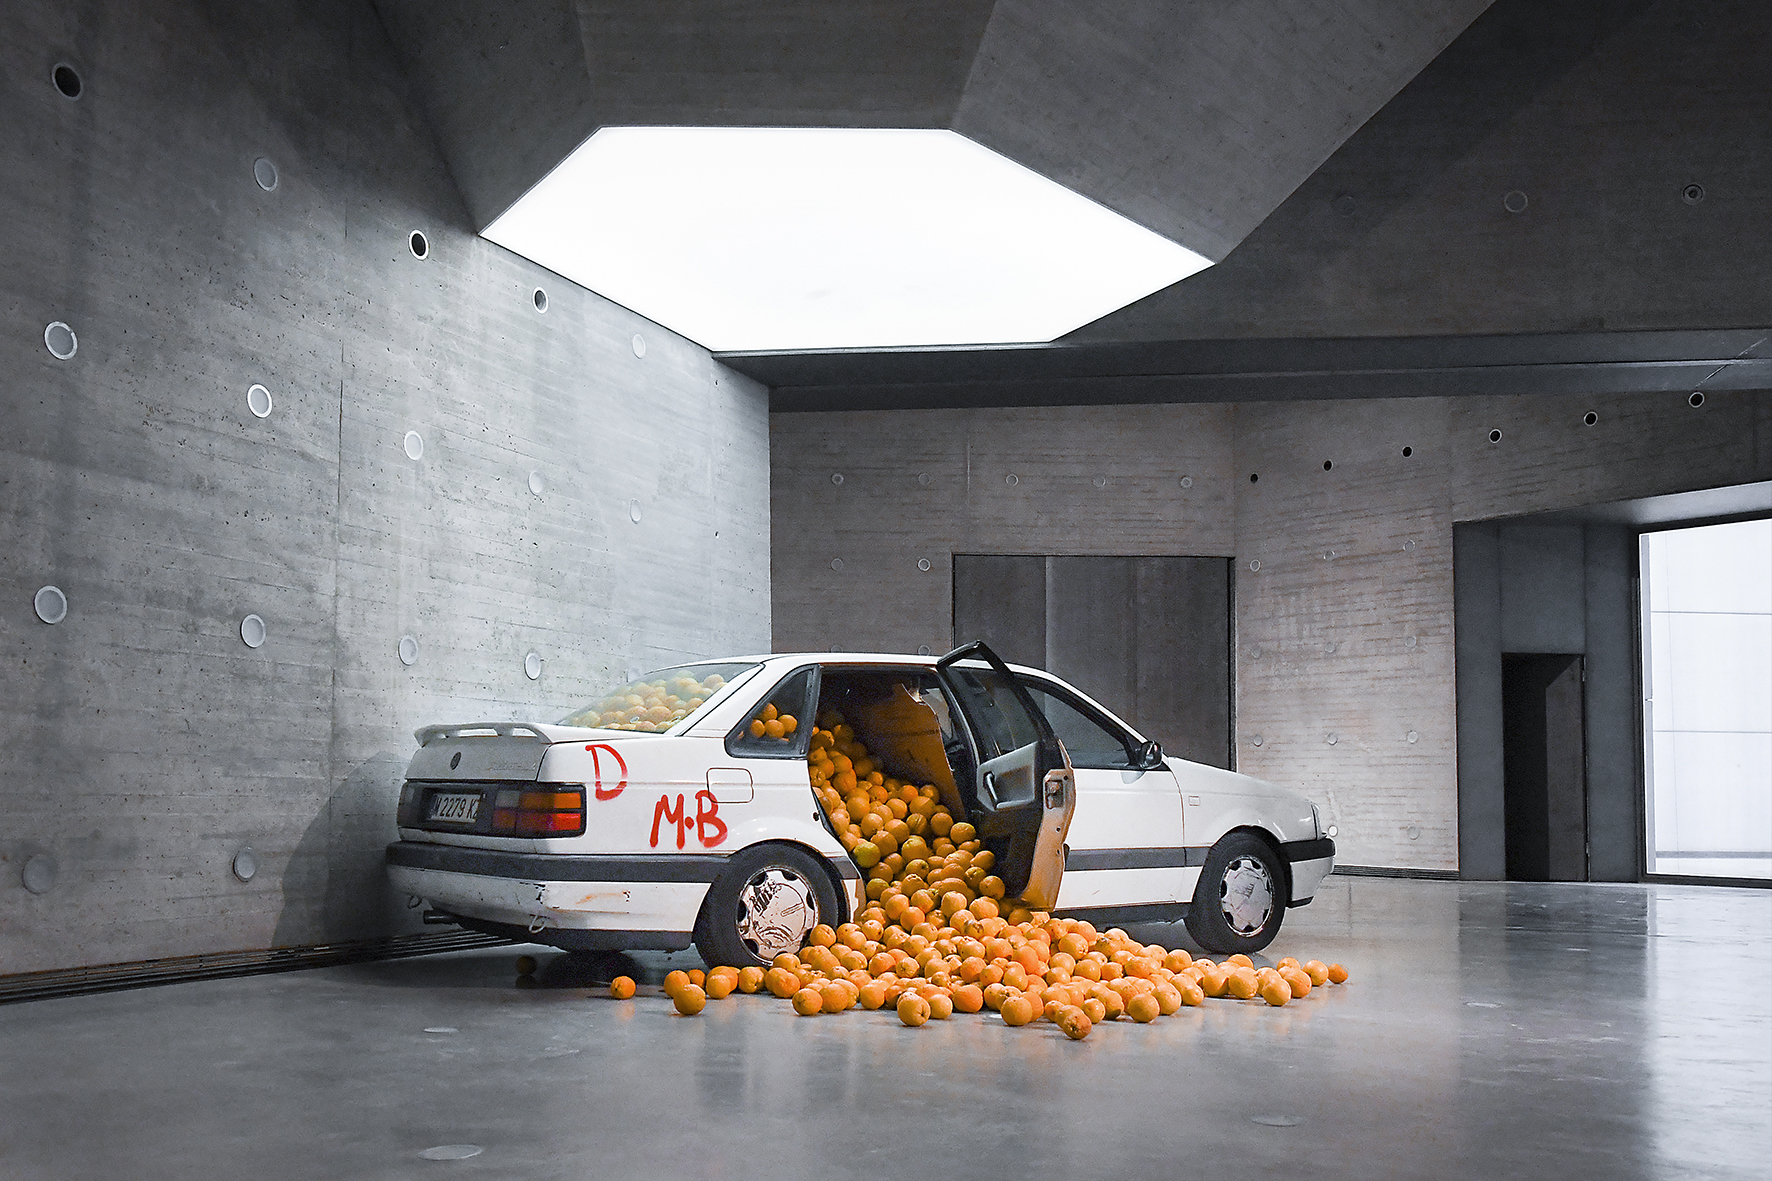 A crashed car with graffitt on it, back door open with oranges coming out, in a gallery